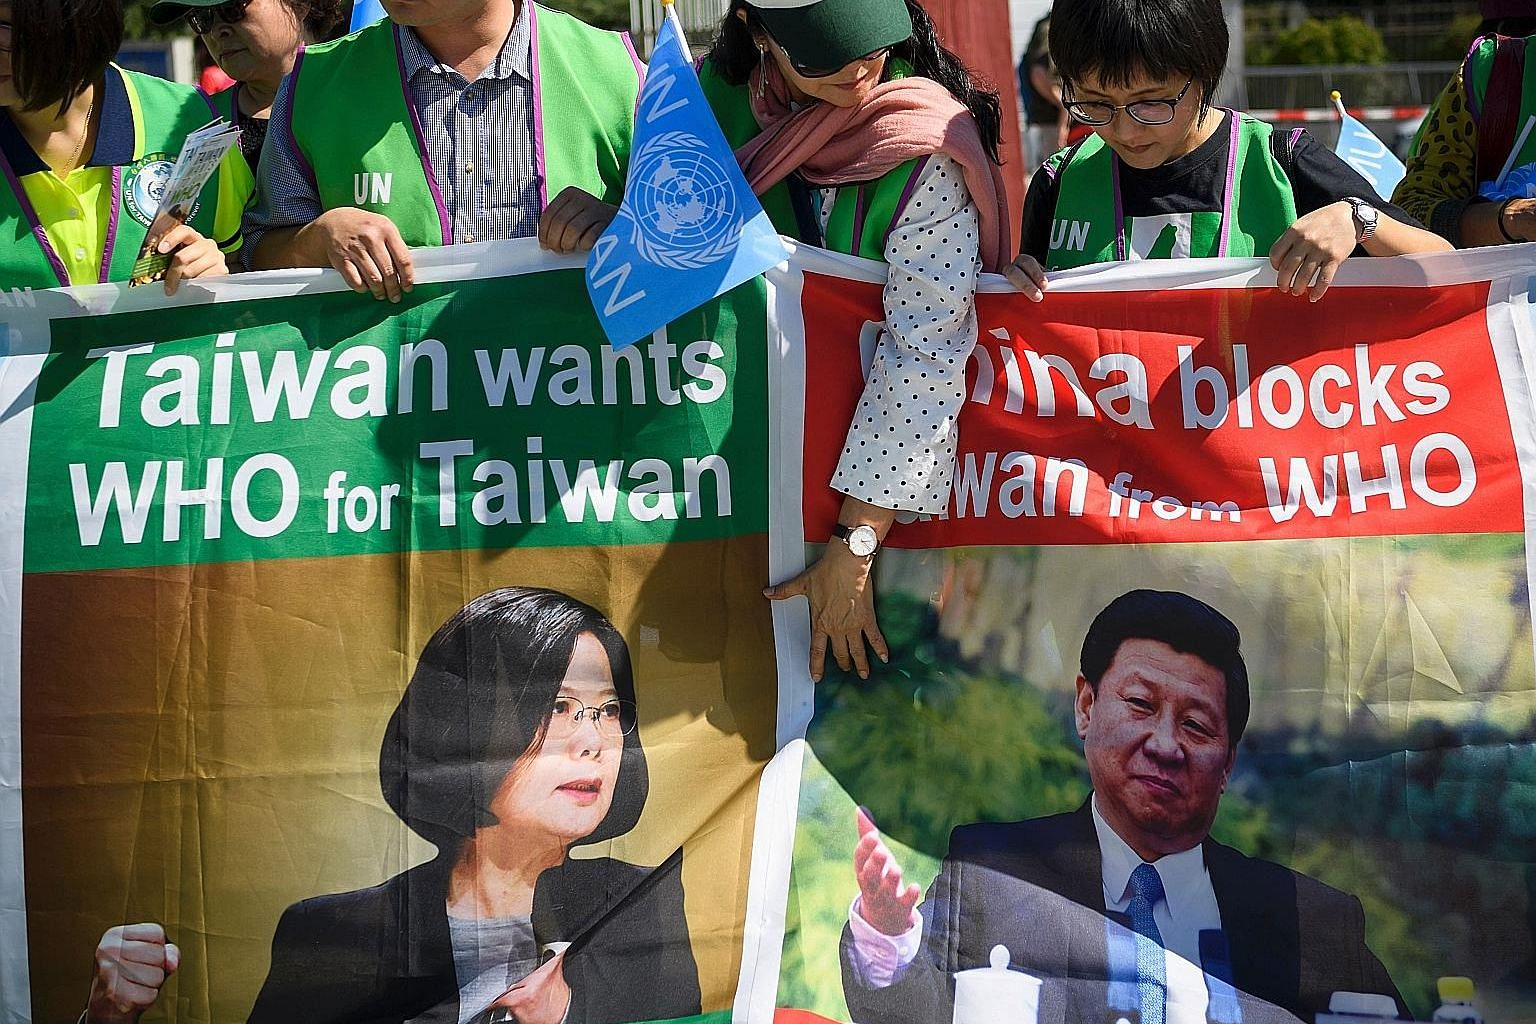 Pro-Taiwan protesters demonstrating outside the United Nations offices on the opening day of the World Health Organisation's (WHO) annual meeting in Geneva, Switzerland, in May. China has consistently blocked Taiwan's efforts to take part in internat